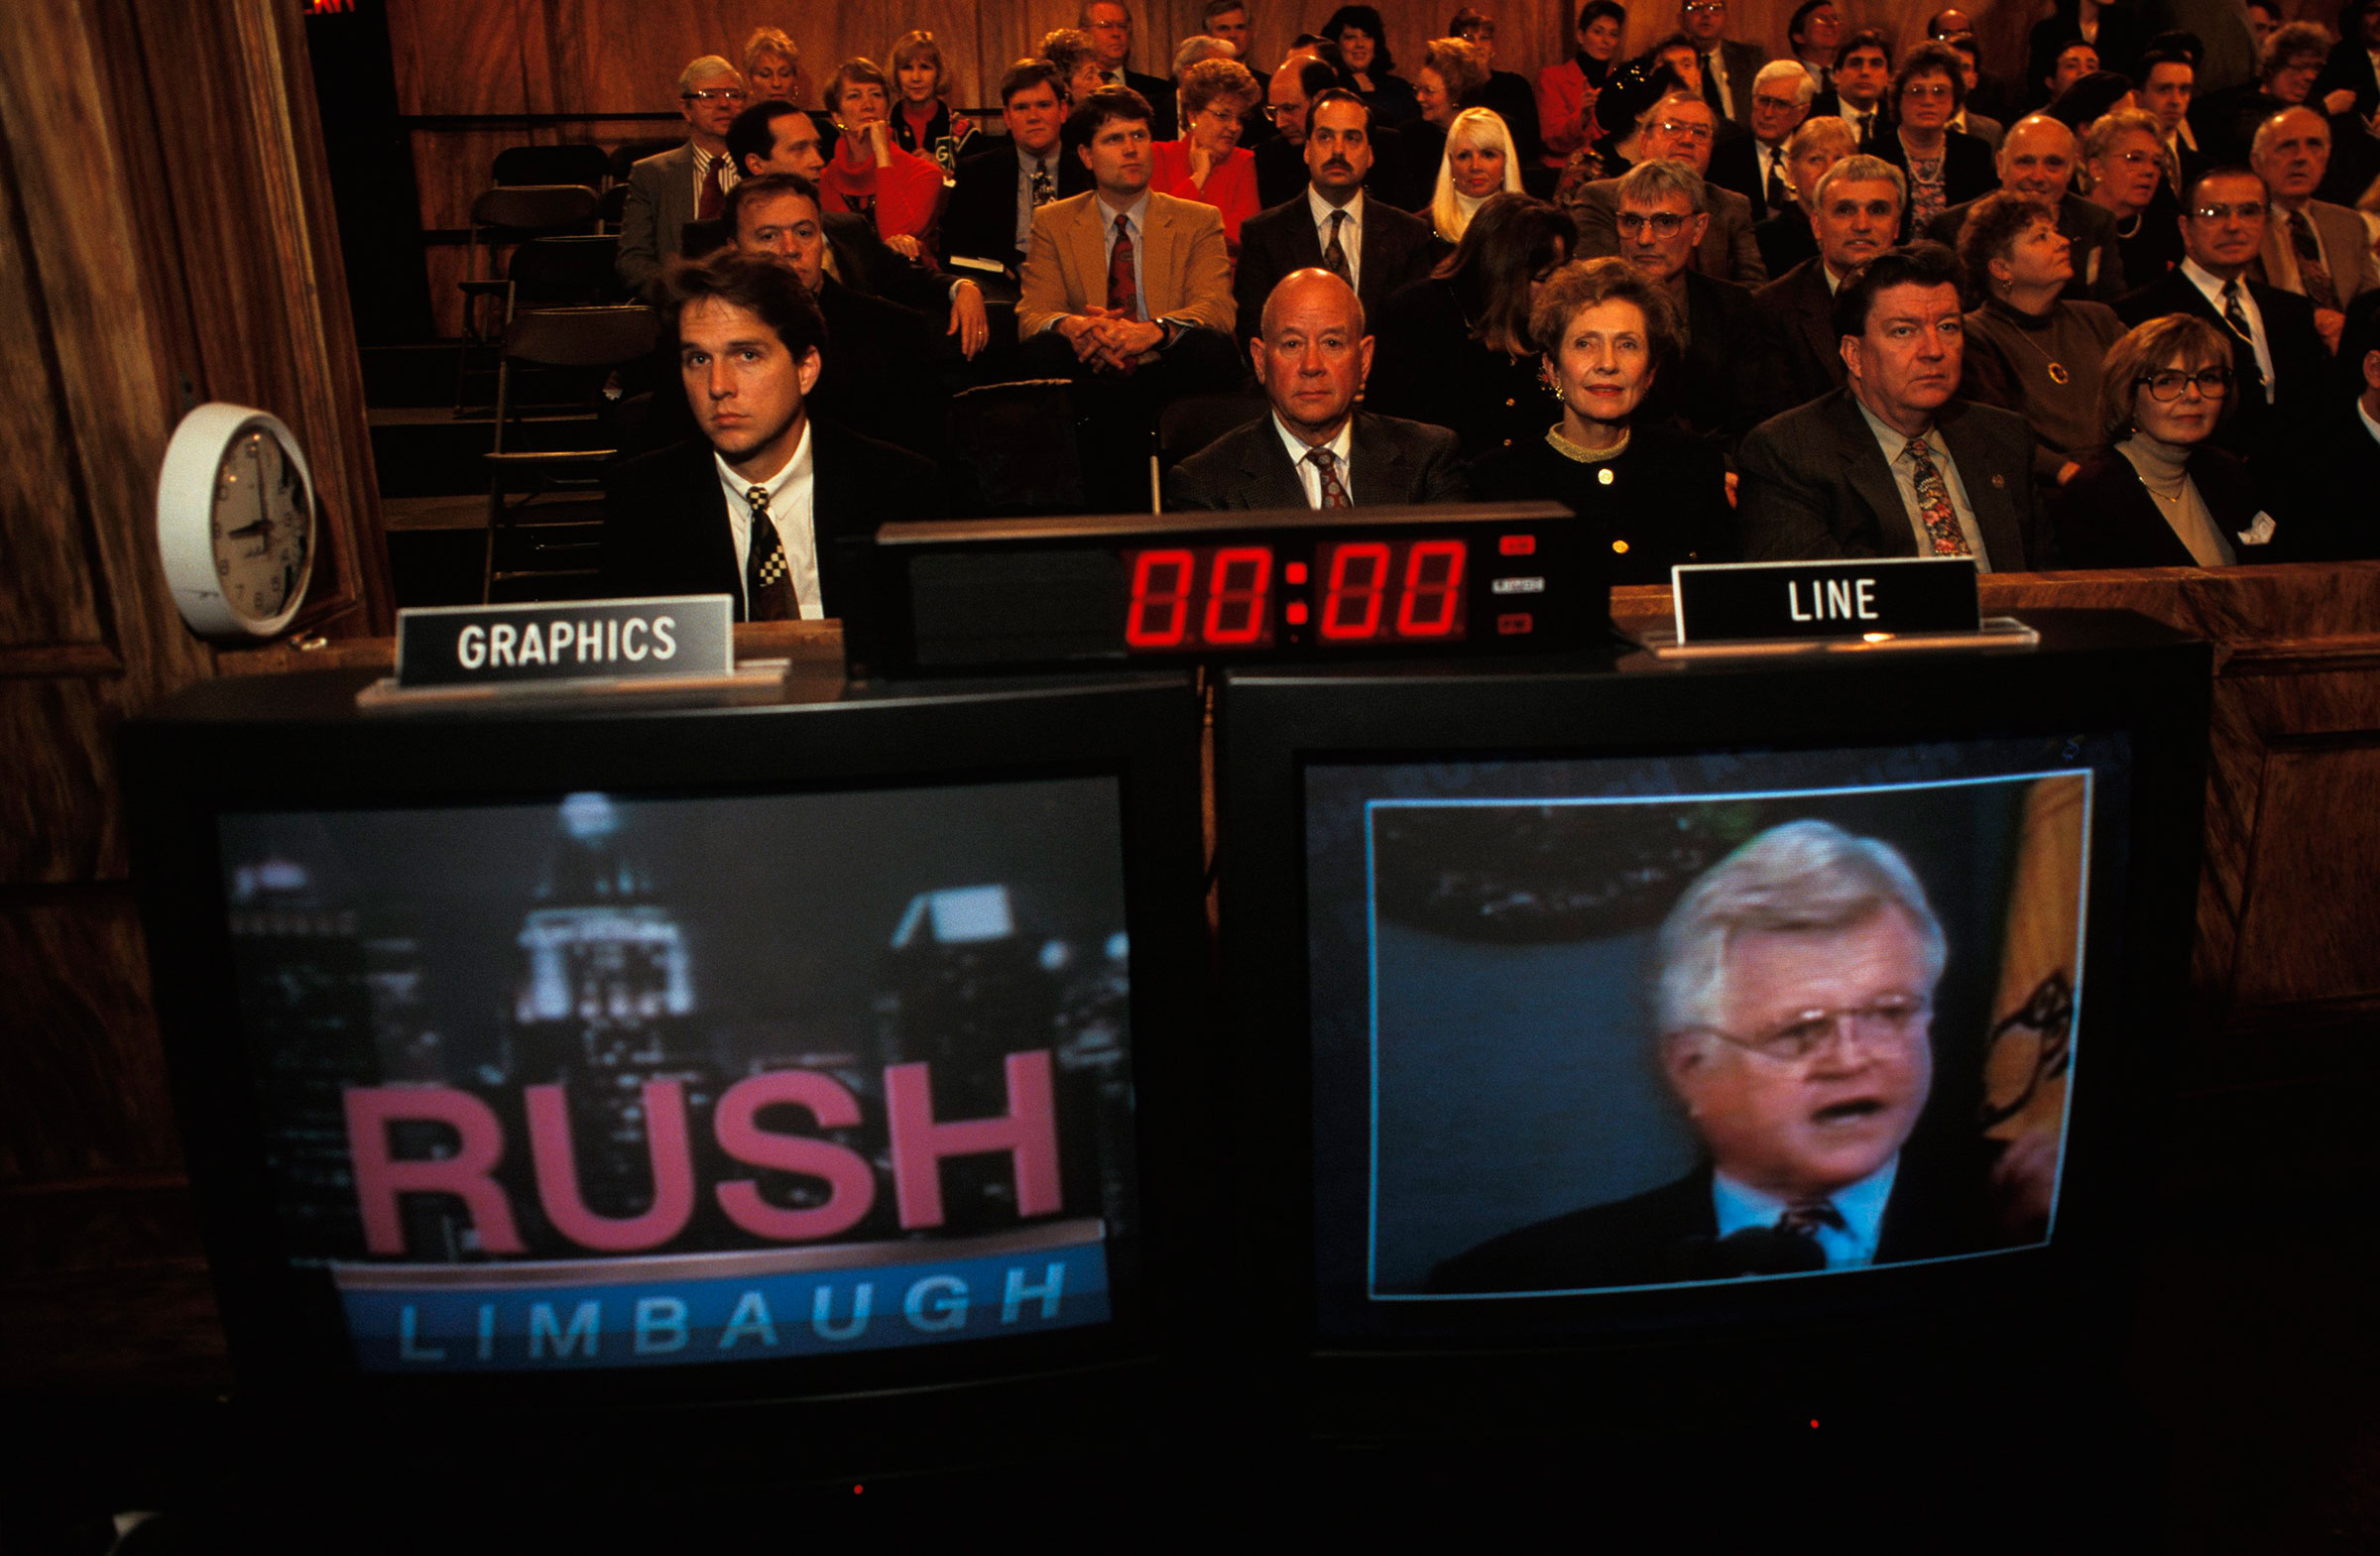 A scene from the set of Rush Limbaugh's show, 1995.